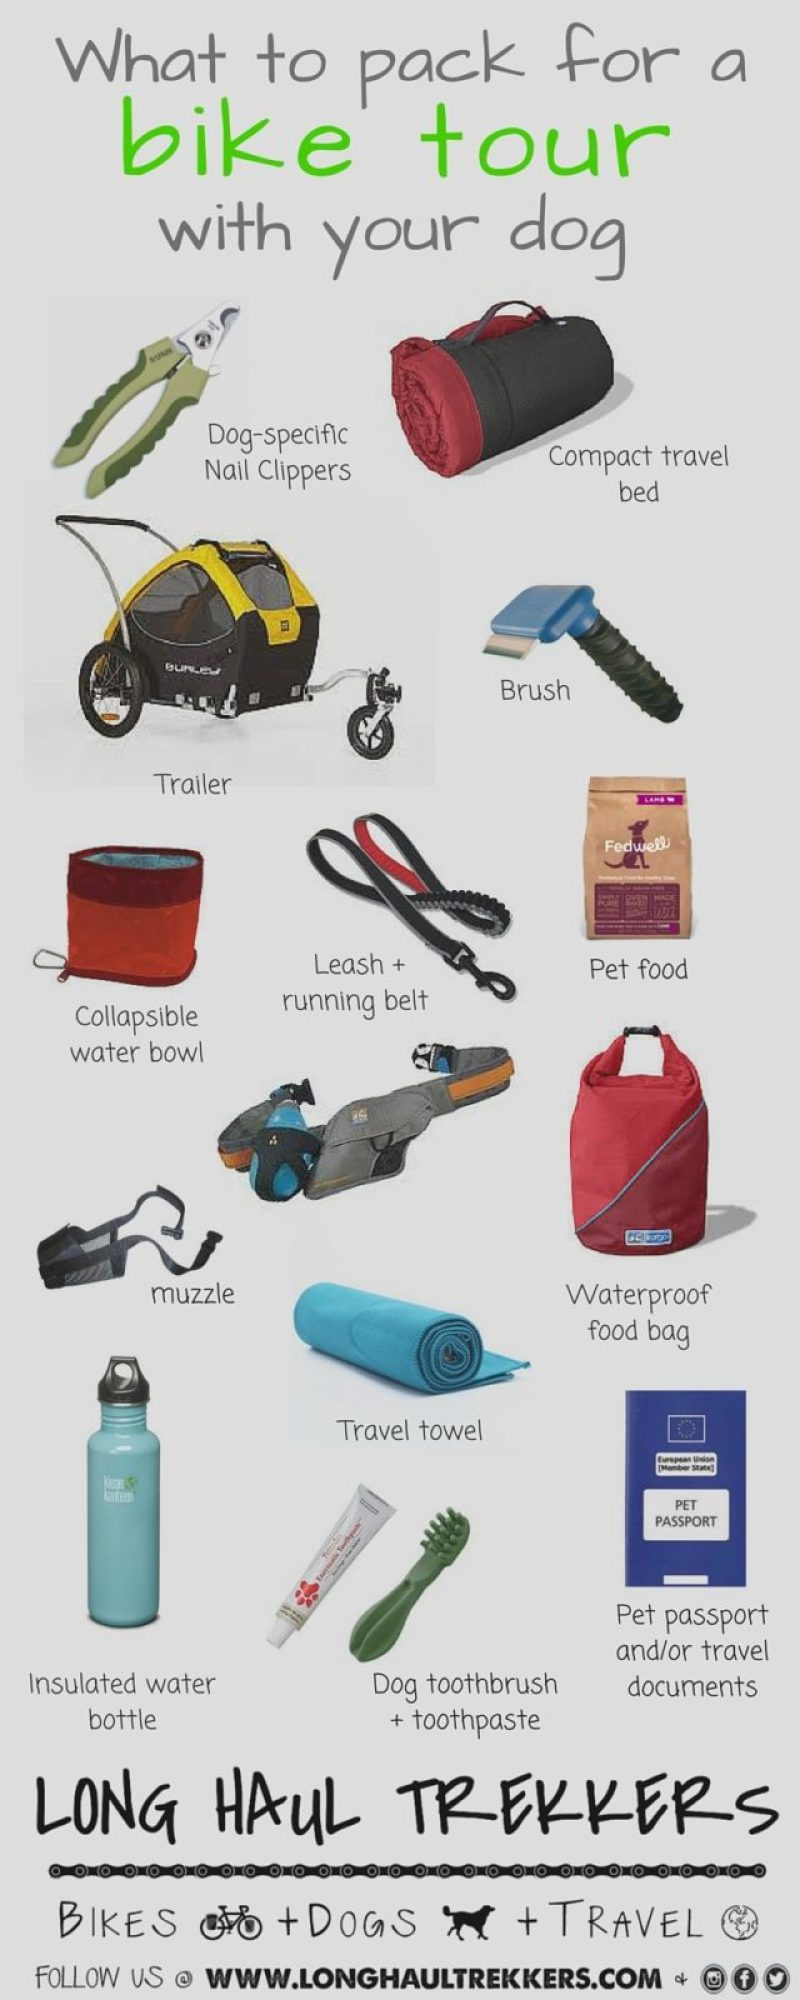 What to Pack for a Bike Tour with Your Dog